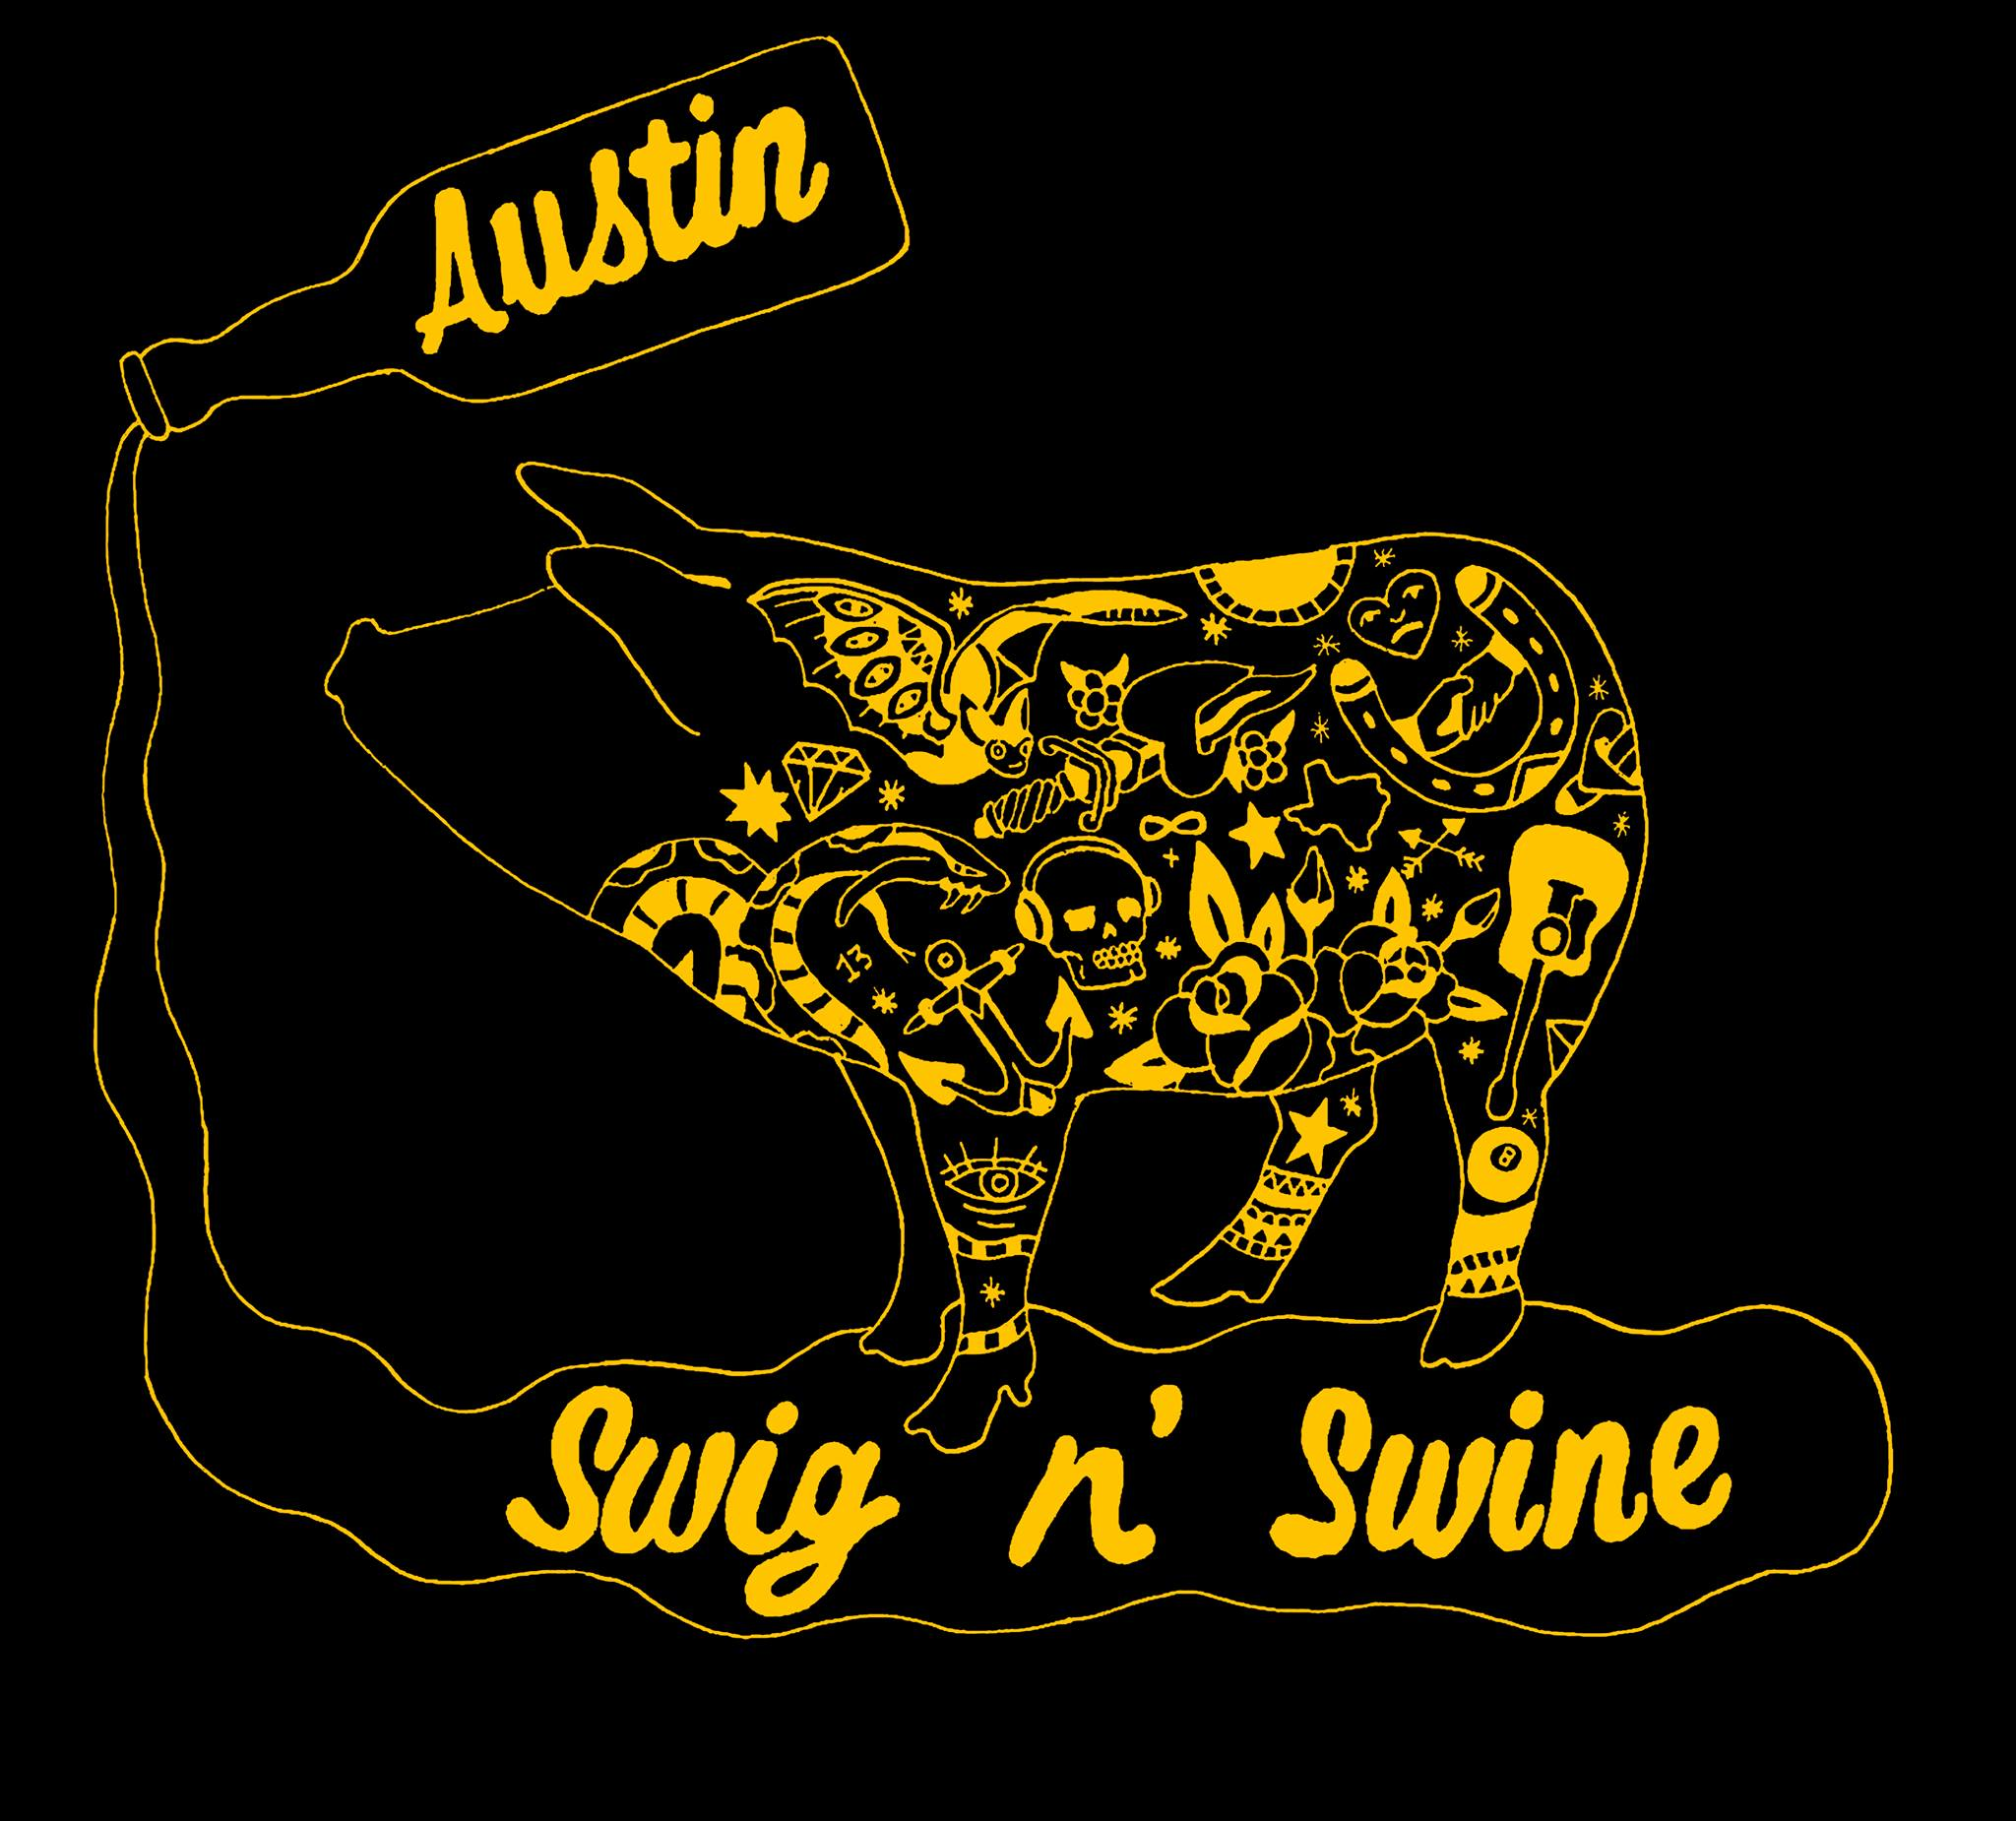 Swig n' Swine at SXSW